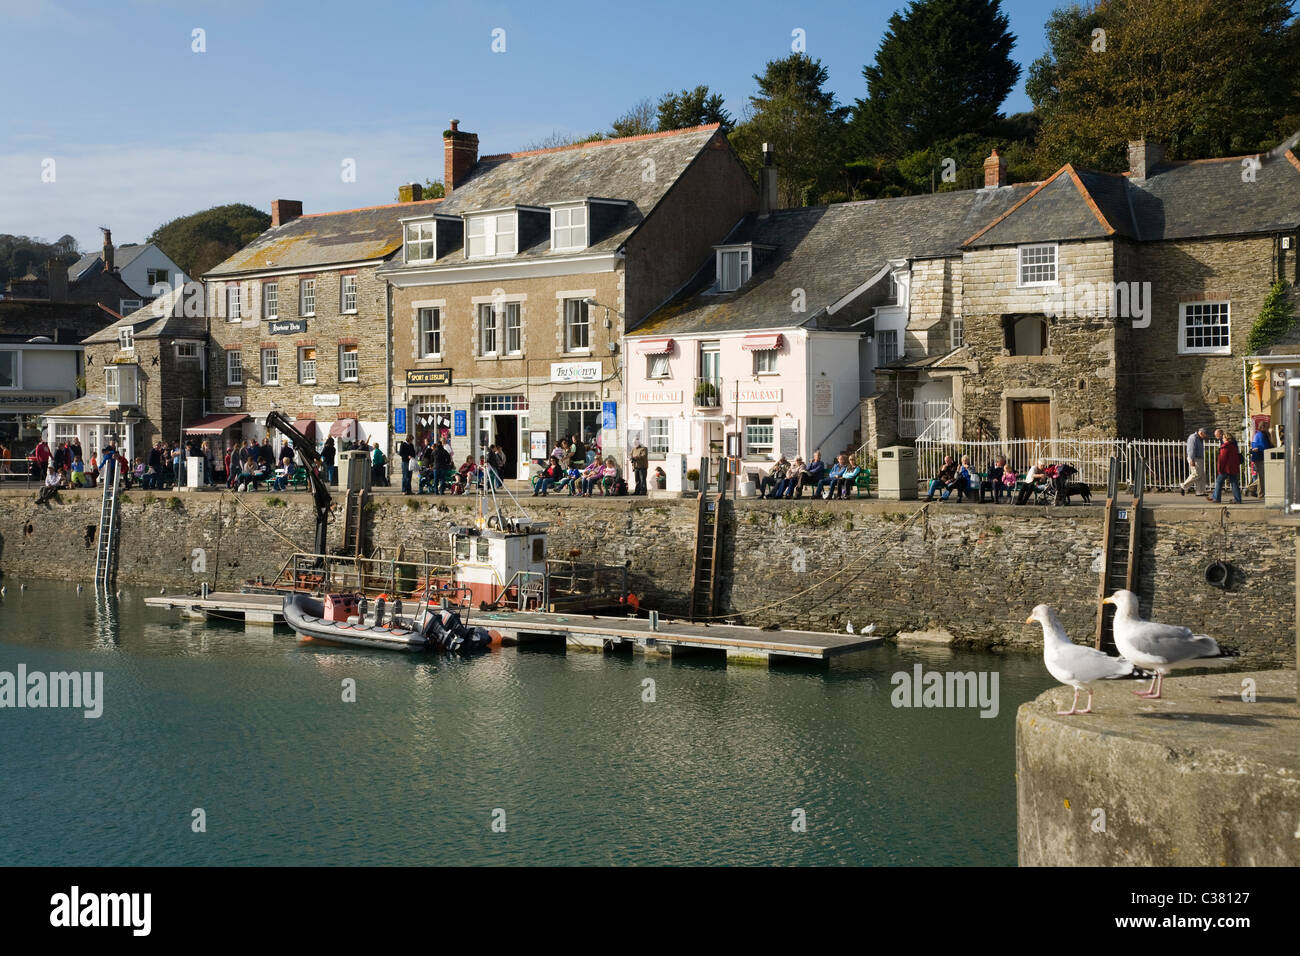 harbour wall quayside buildings building shops shop pub harbour wall quayside buildings building shops shop pub pubs house home homes on quay side padstow cornwall uk